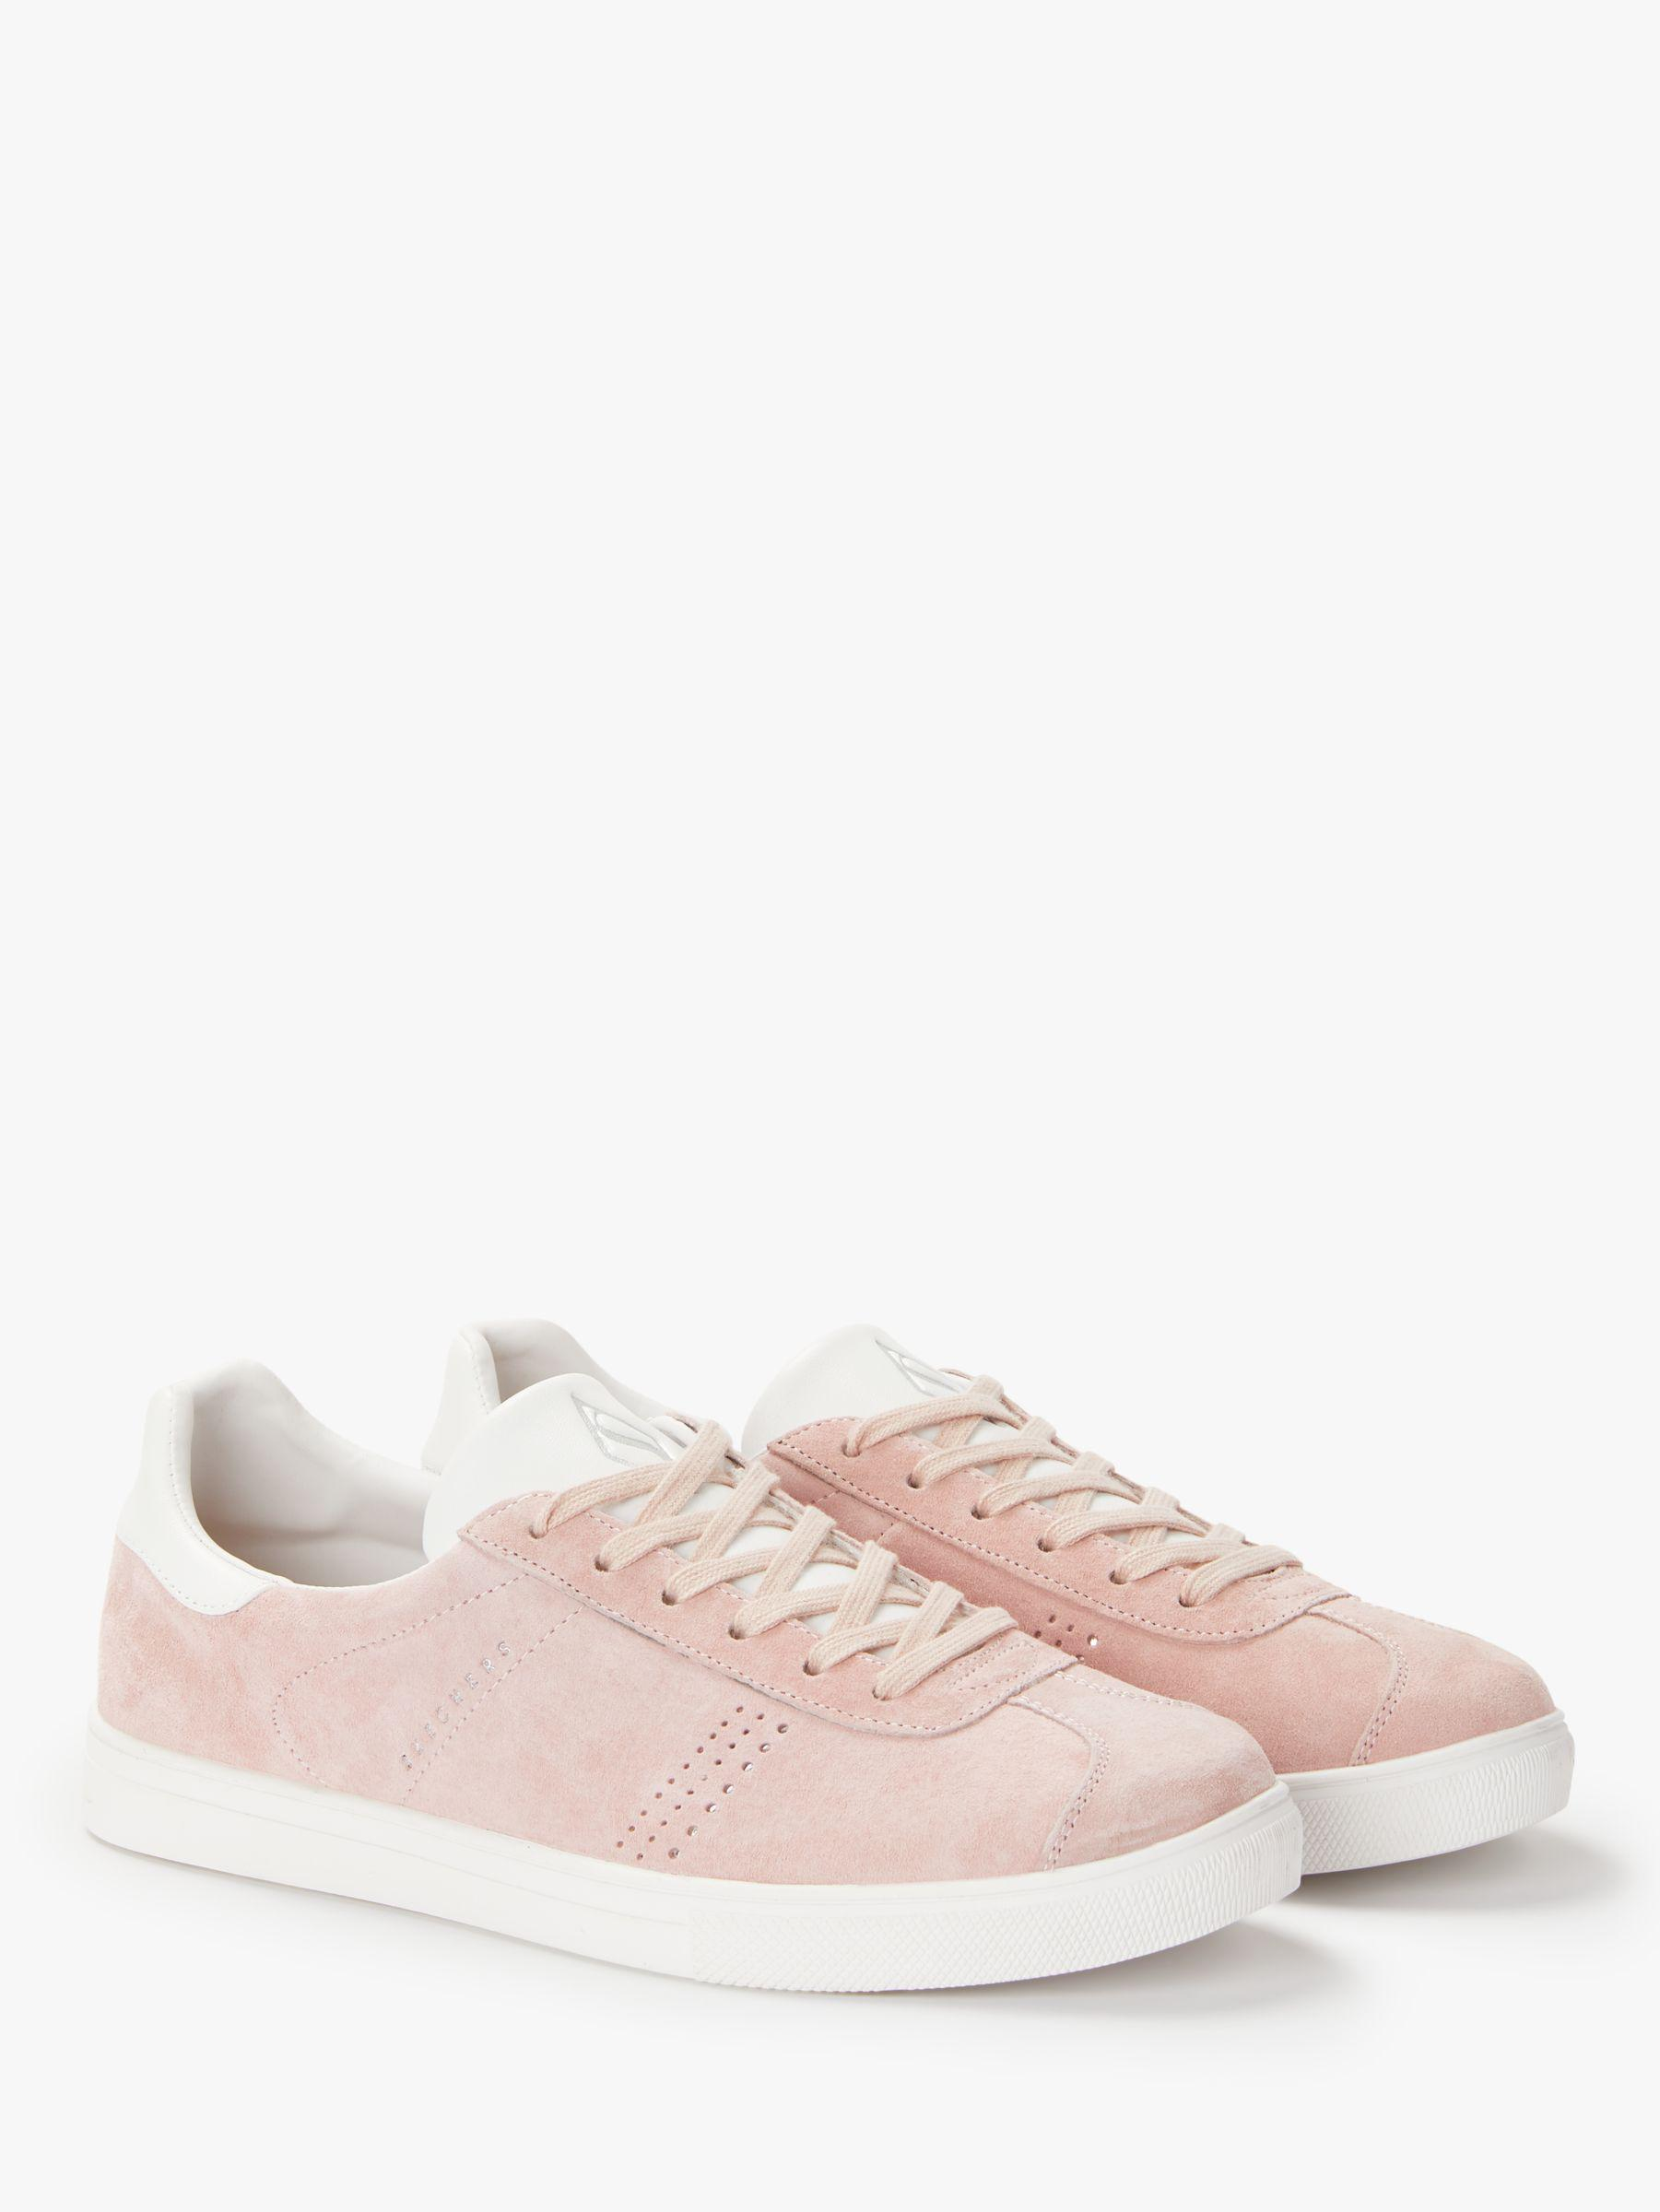 Skechers Denim Moda Perswayed Lace Up Trainers in Pink Suede (Pink)